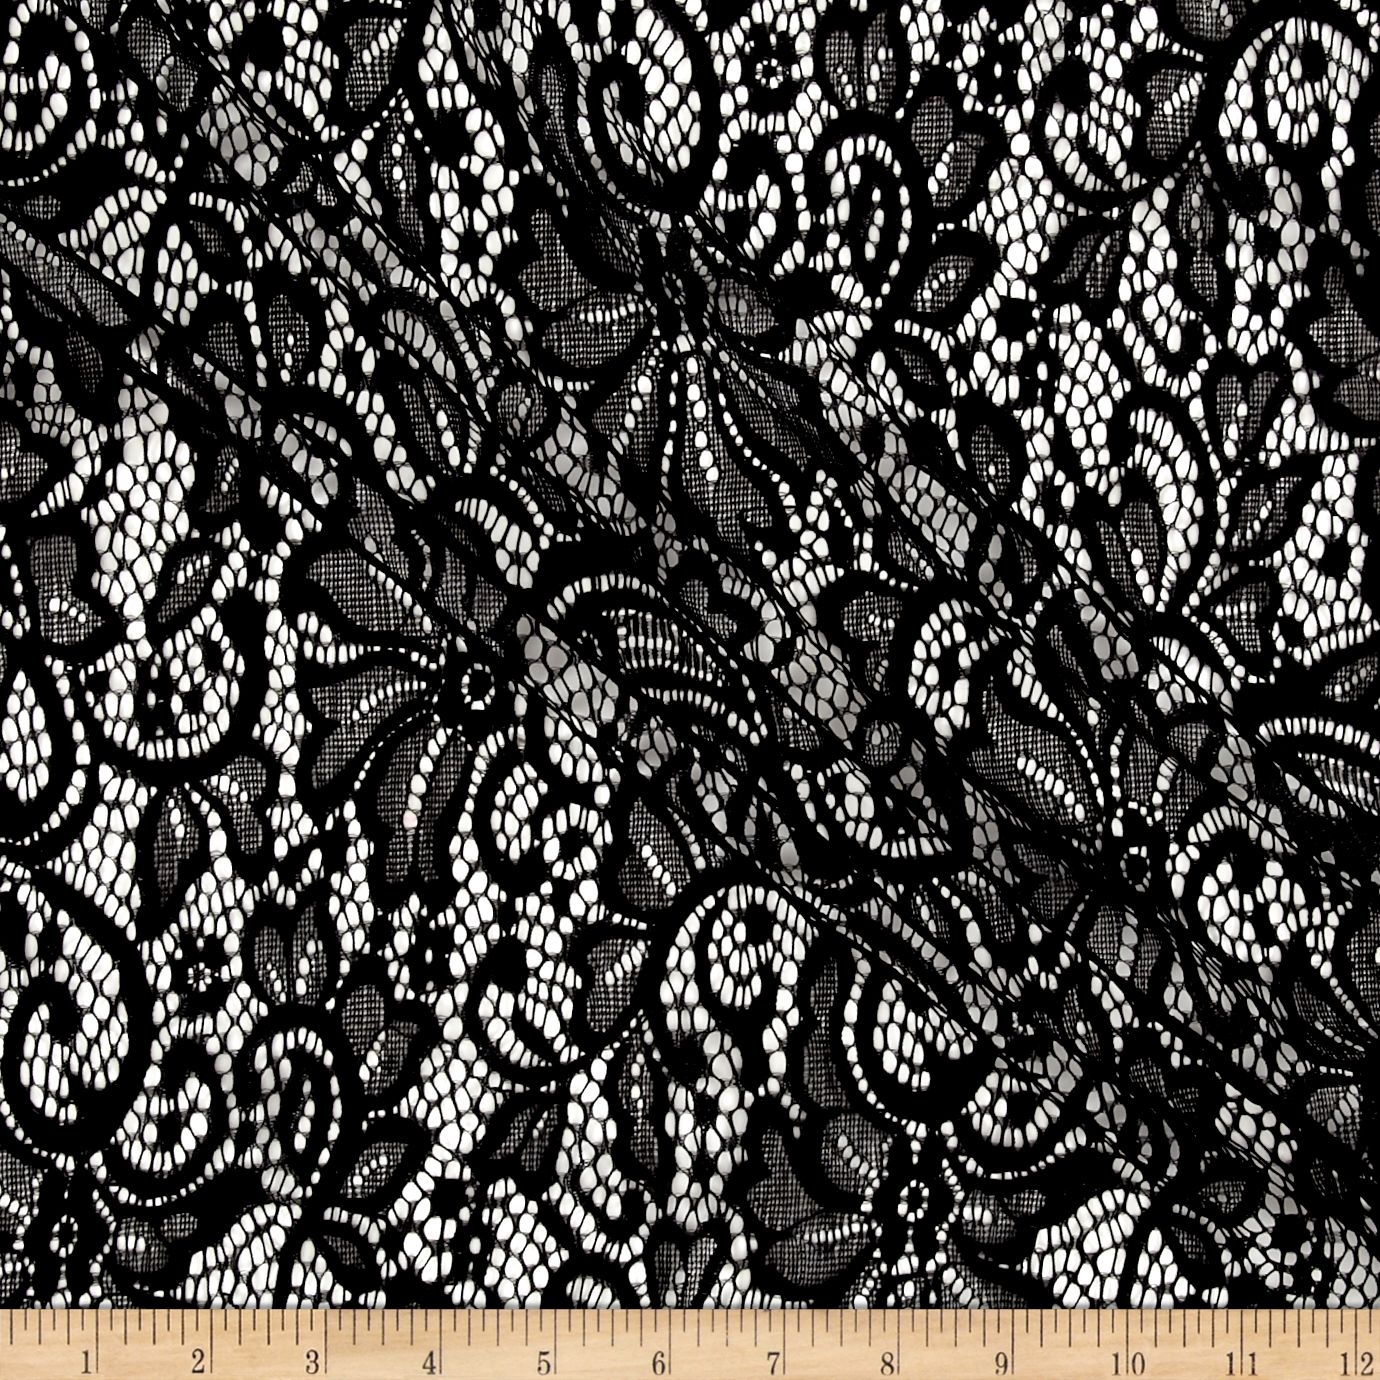 Flower Lace Black Fabric by Stardom Specialty in USA